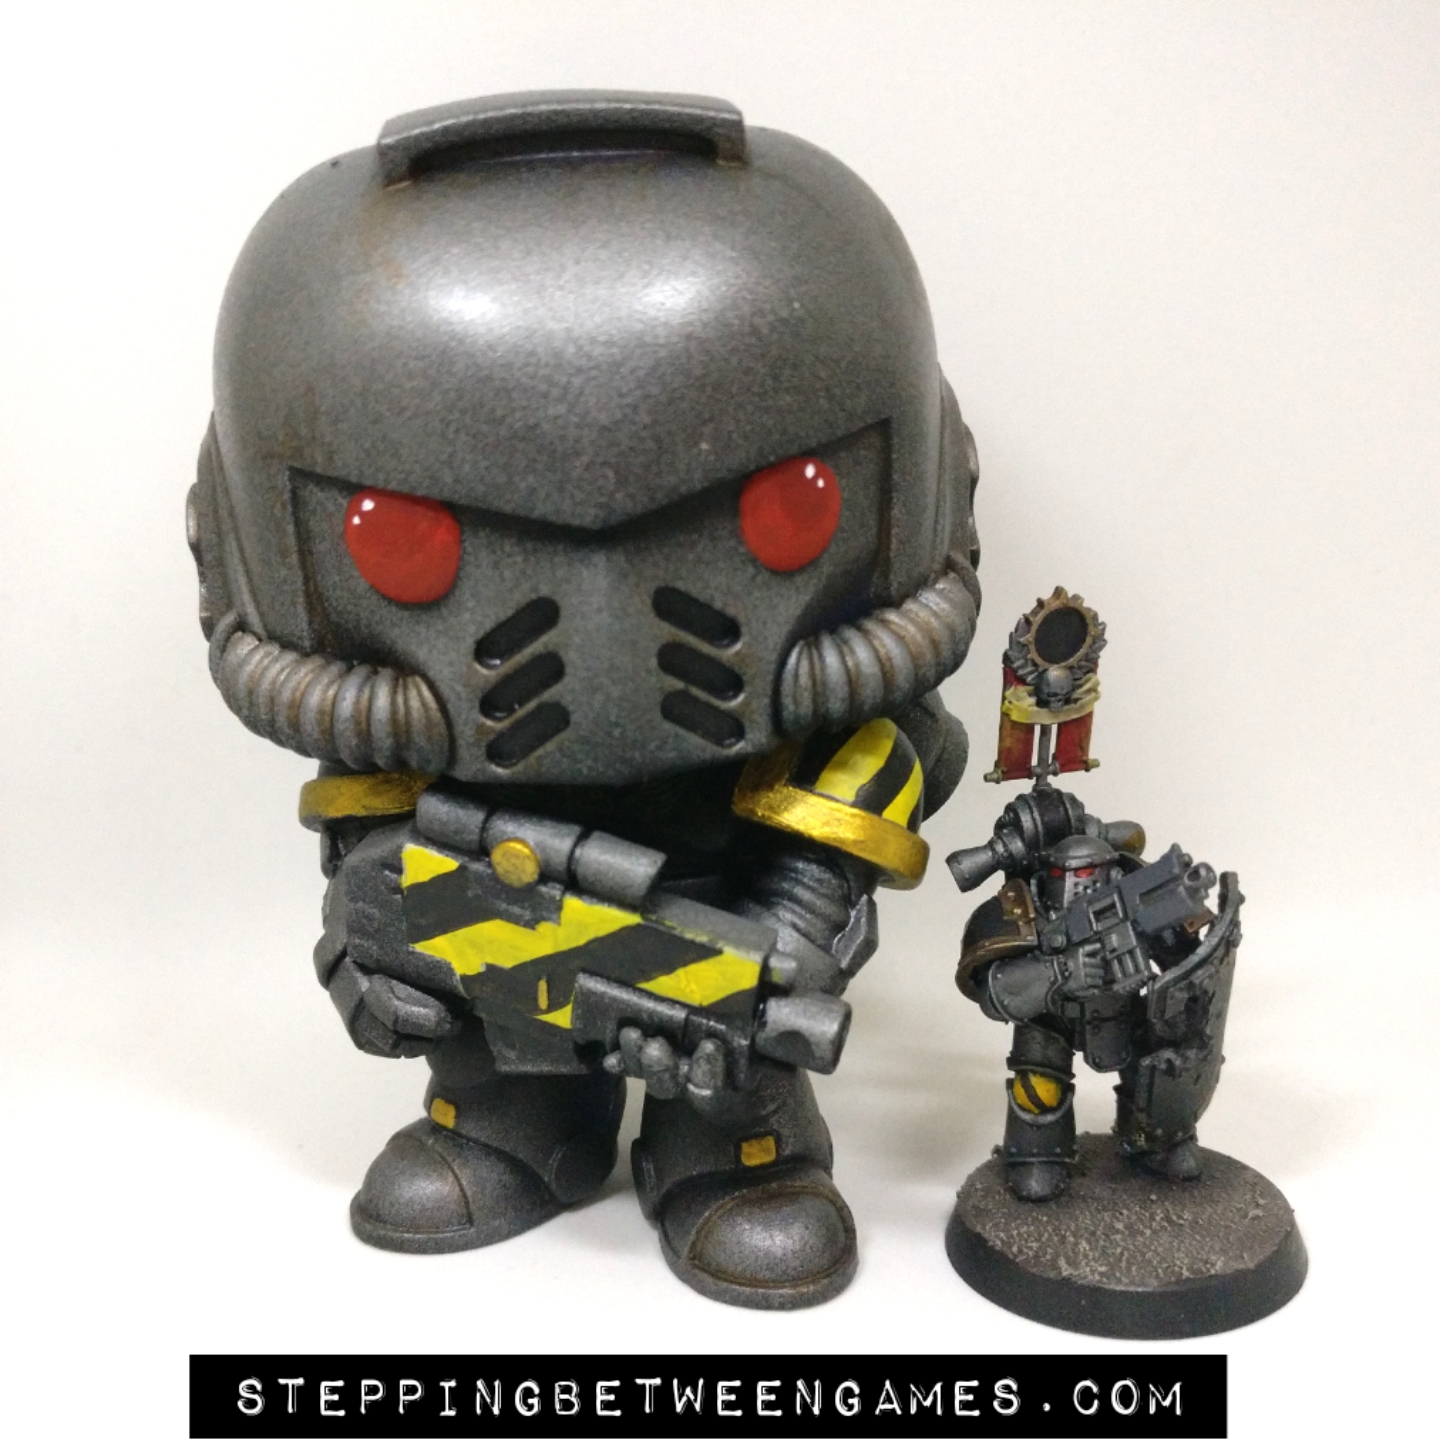 Iron Warriors Funko Pop size against 28mm marine